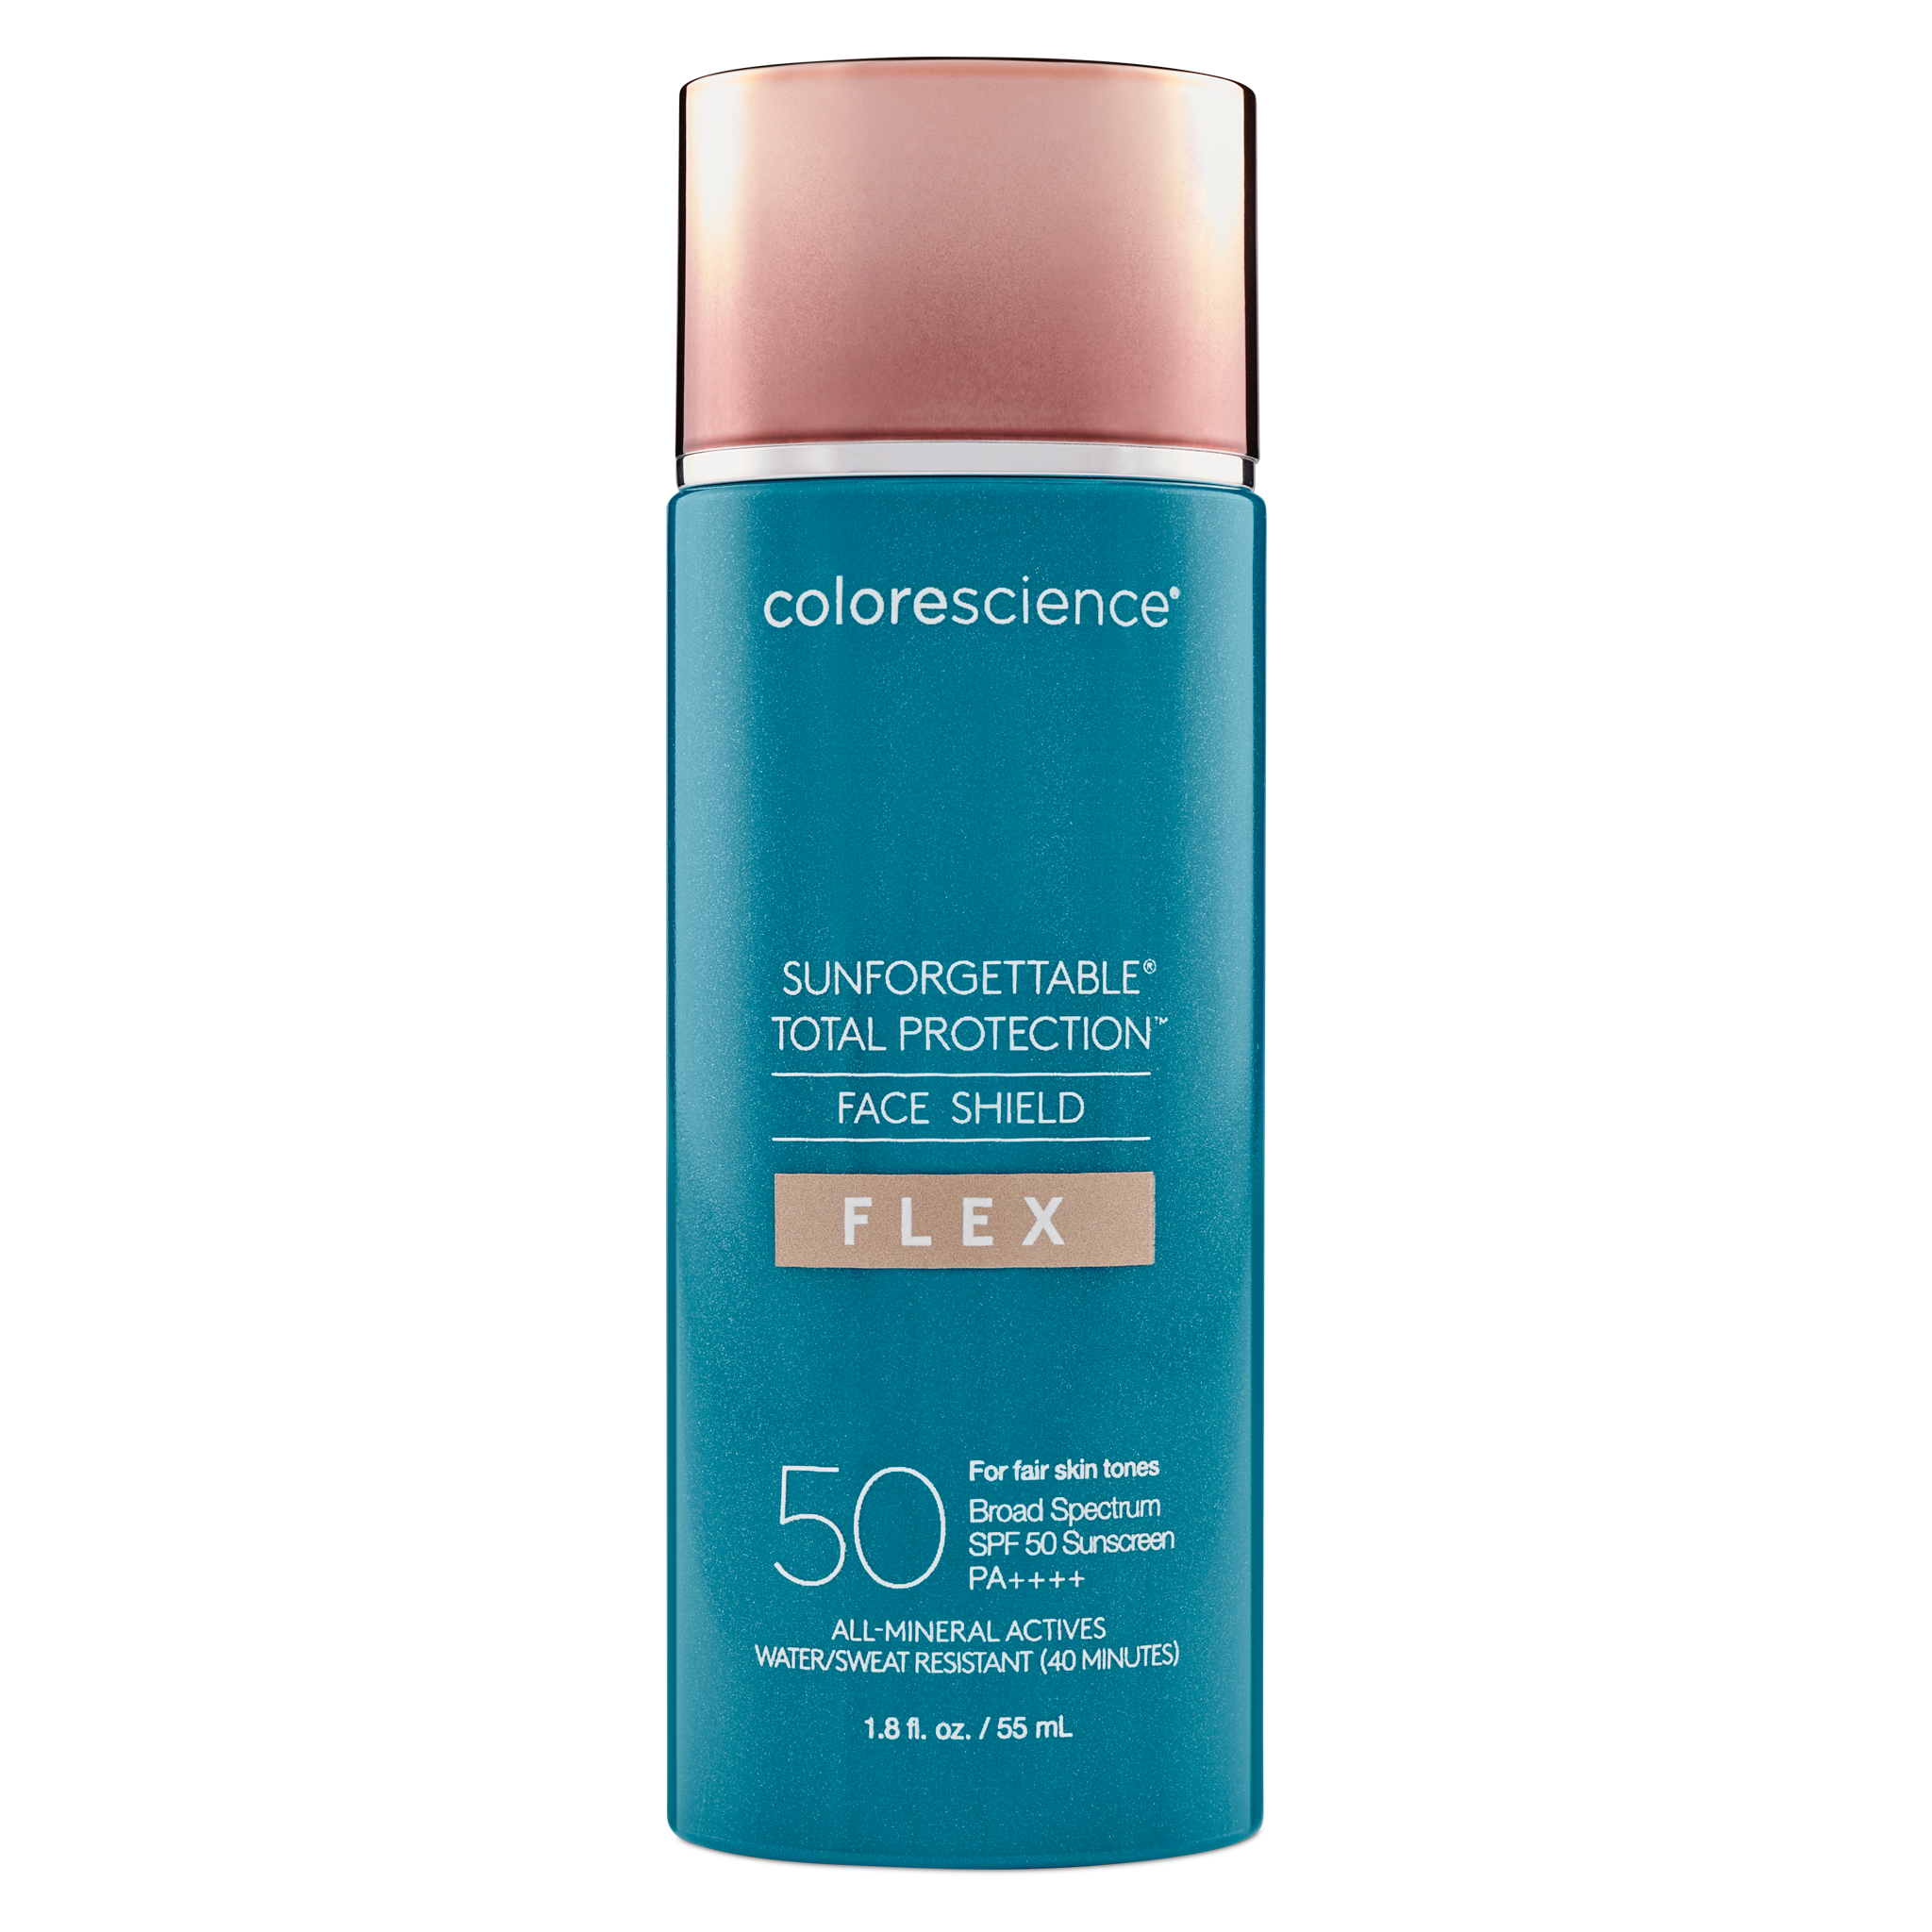 Sunforgettable® Total Protection™ Face Shield SPF 50 Flex || Fair